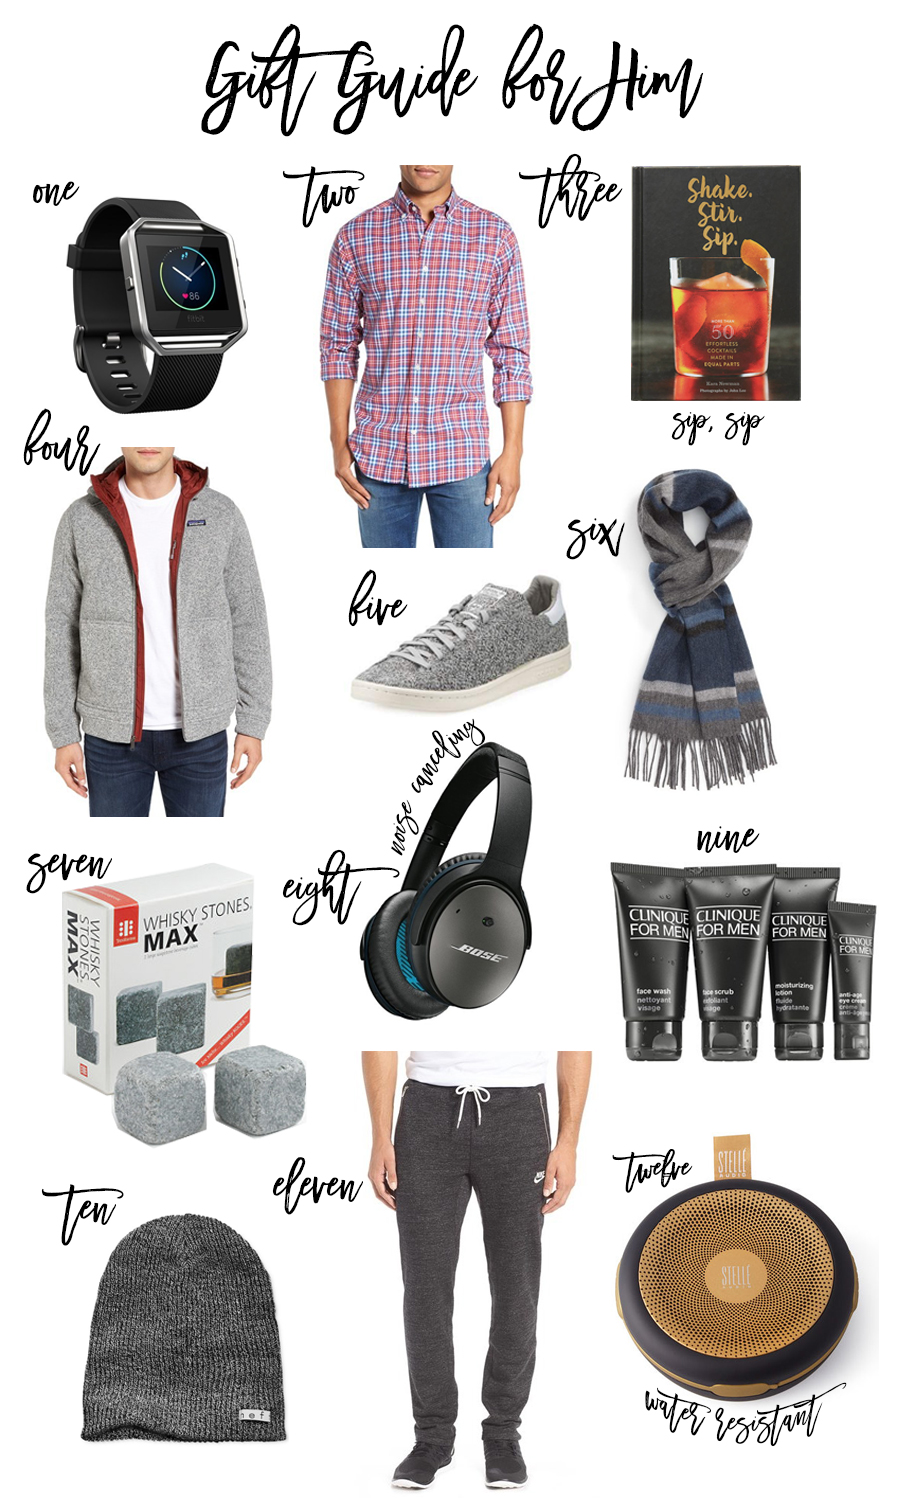 gift-guide-for-him-gift-ideas-for-the-guys-holiday-gift-guide-have-need-want